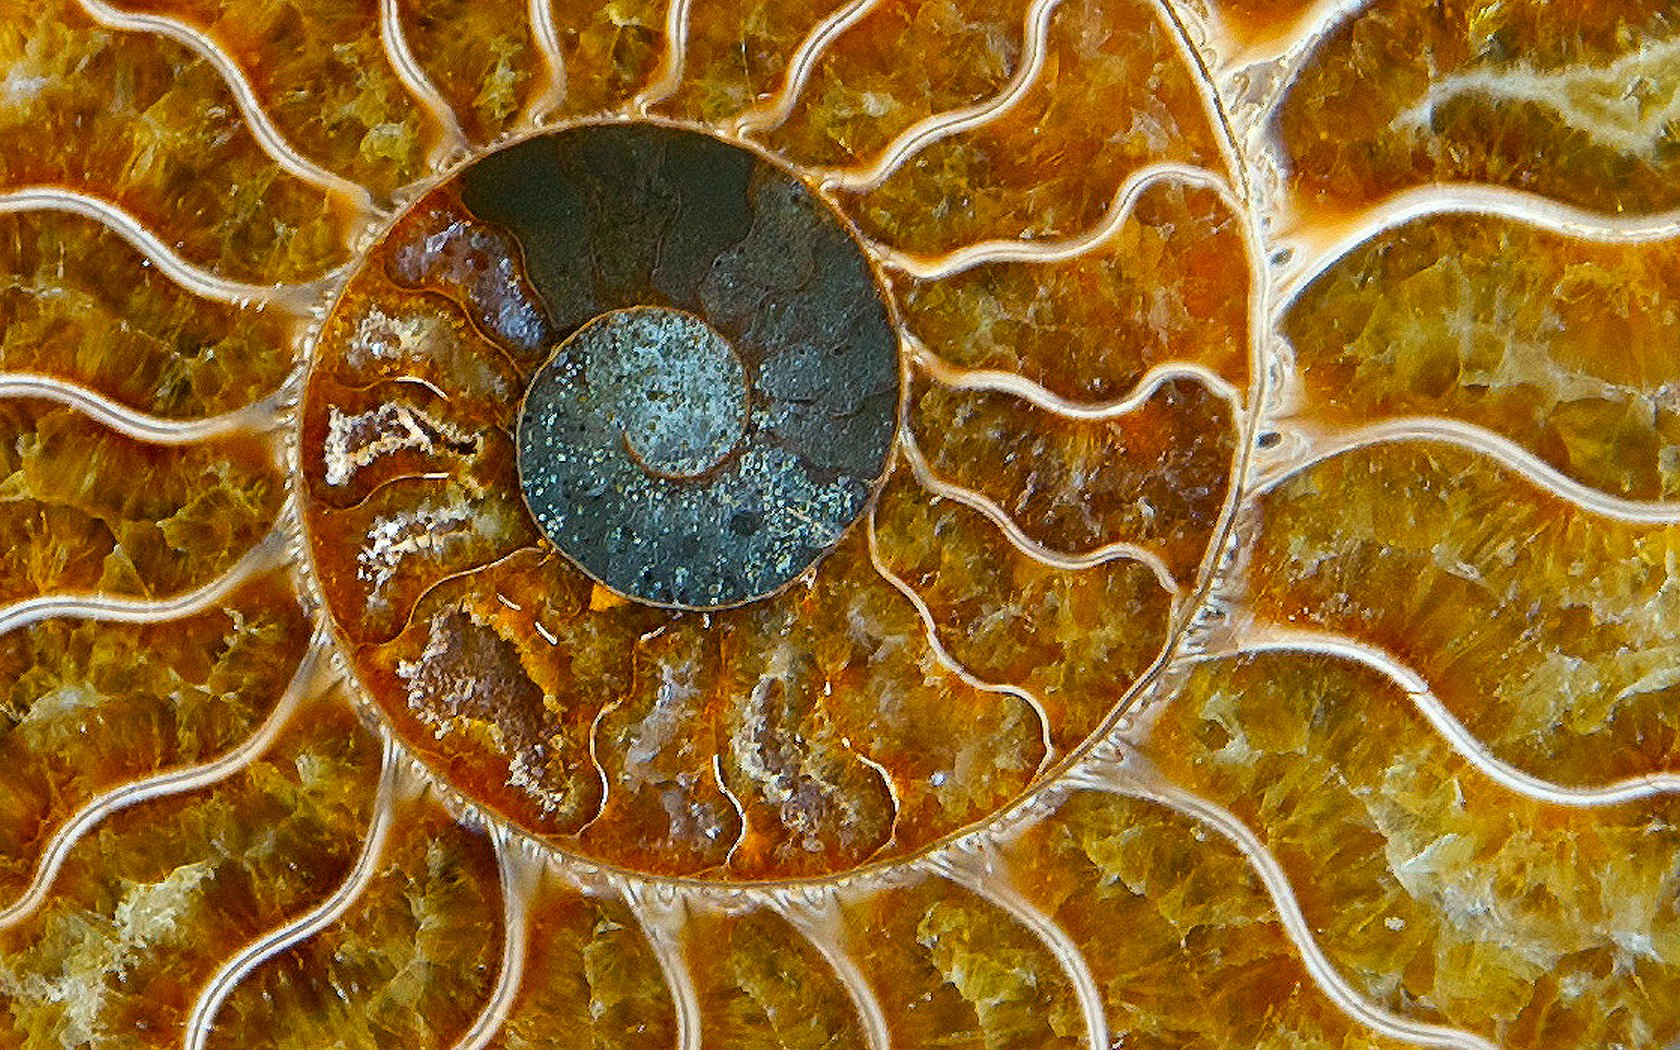 Polished ammonite fossil displaying a fibonacci spiral. Image Credit wplynn via Flickr.